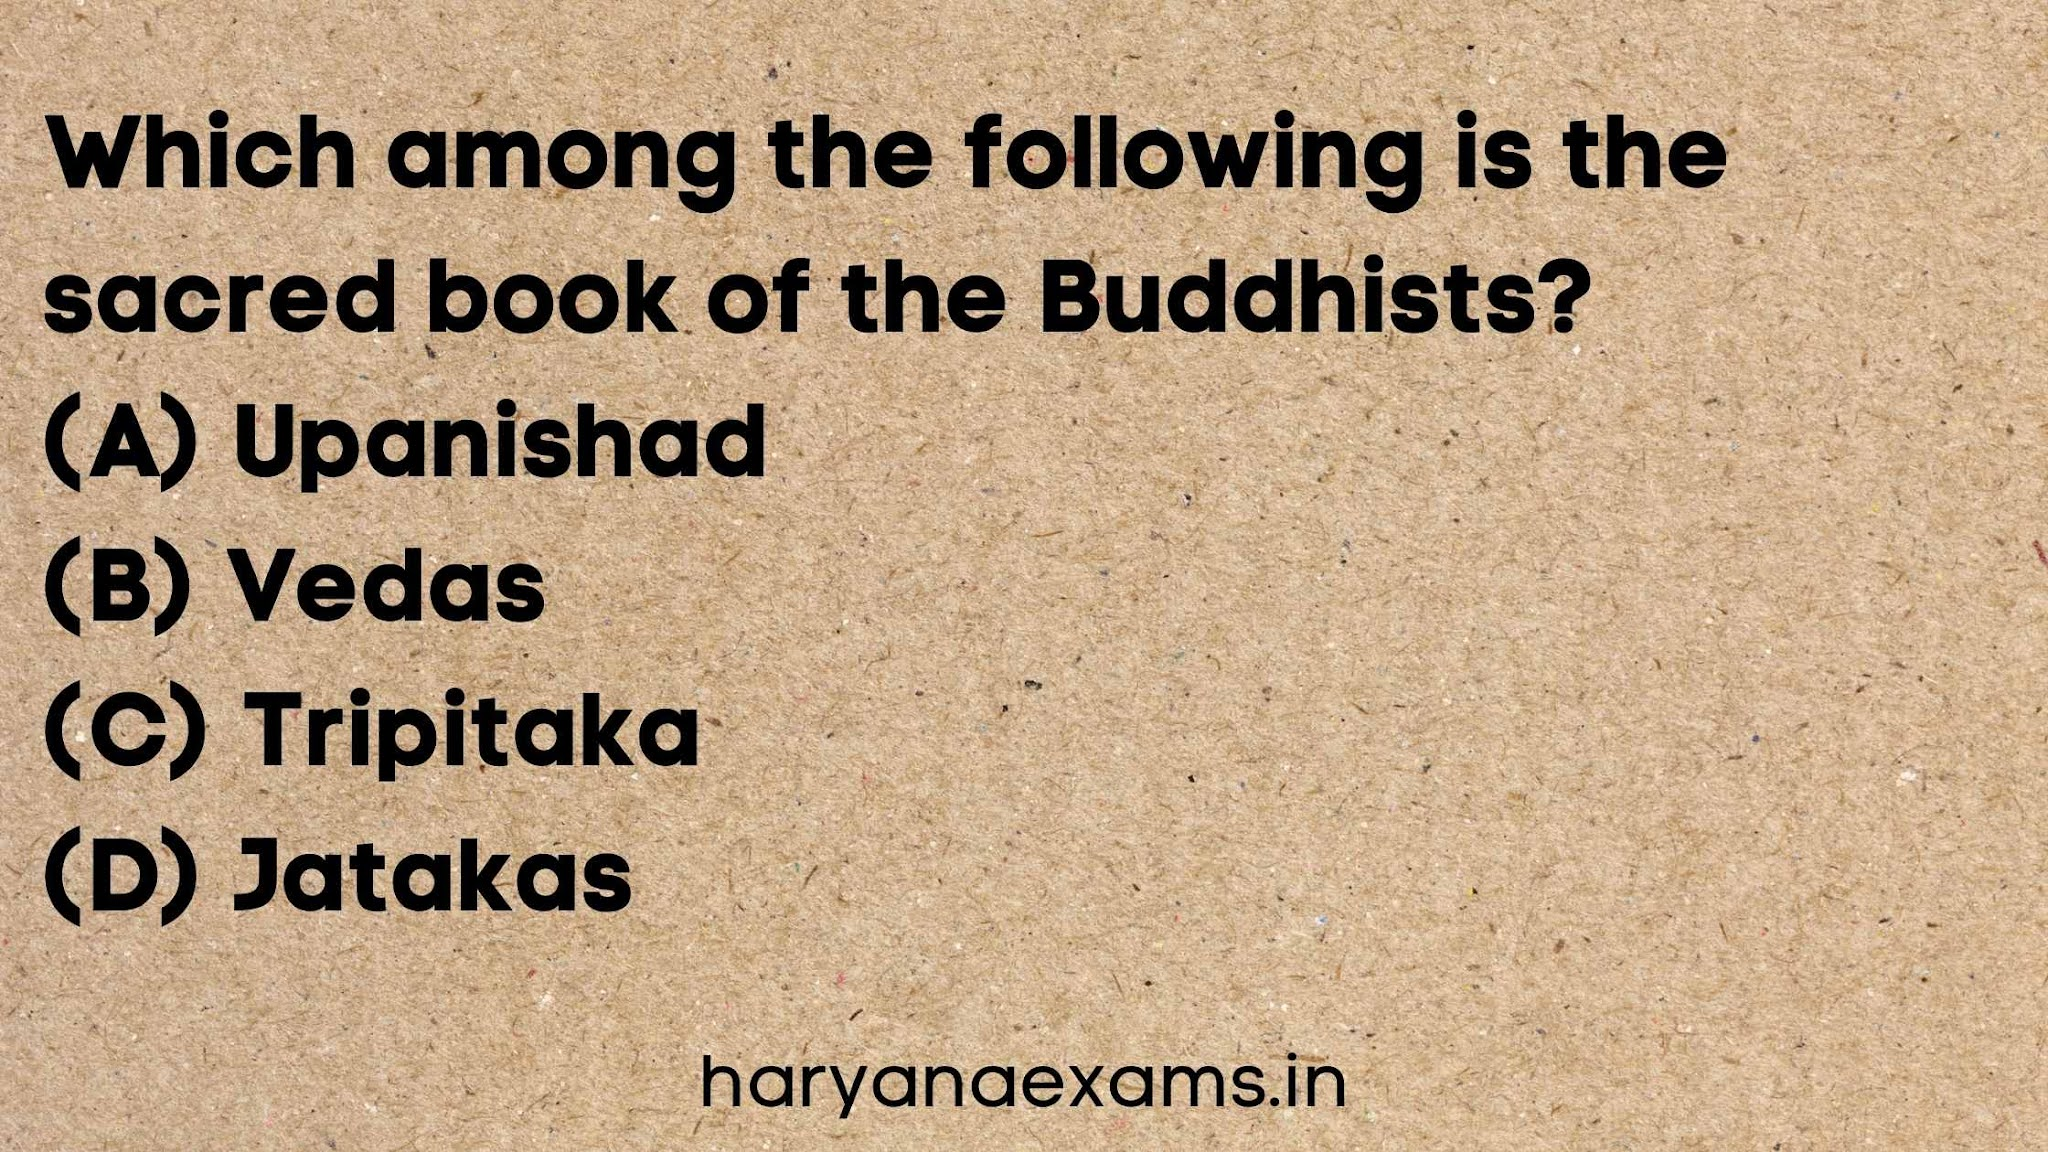 Which among the following is the sacred book of the Buddhists?   (A) Upanishad   (B) Vedas   (C) Tripitaka   (D) Jatakas